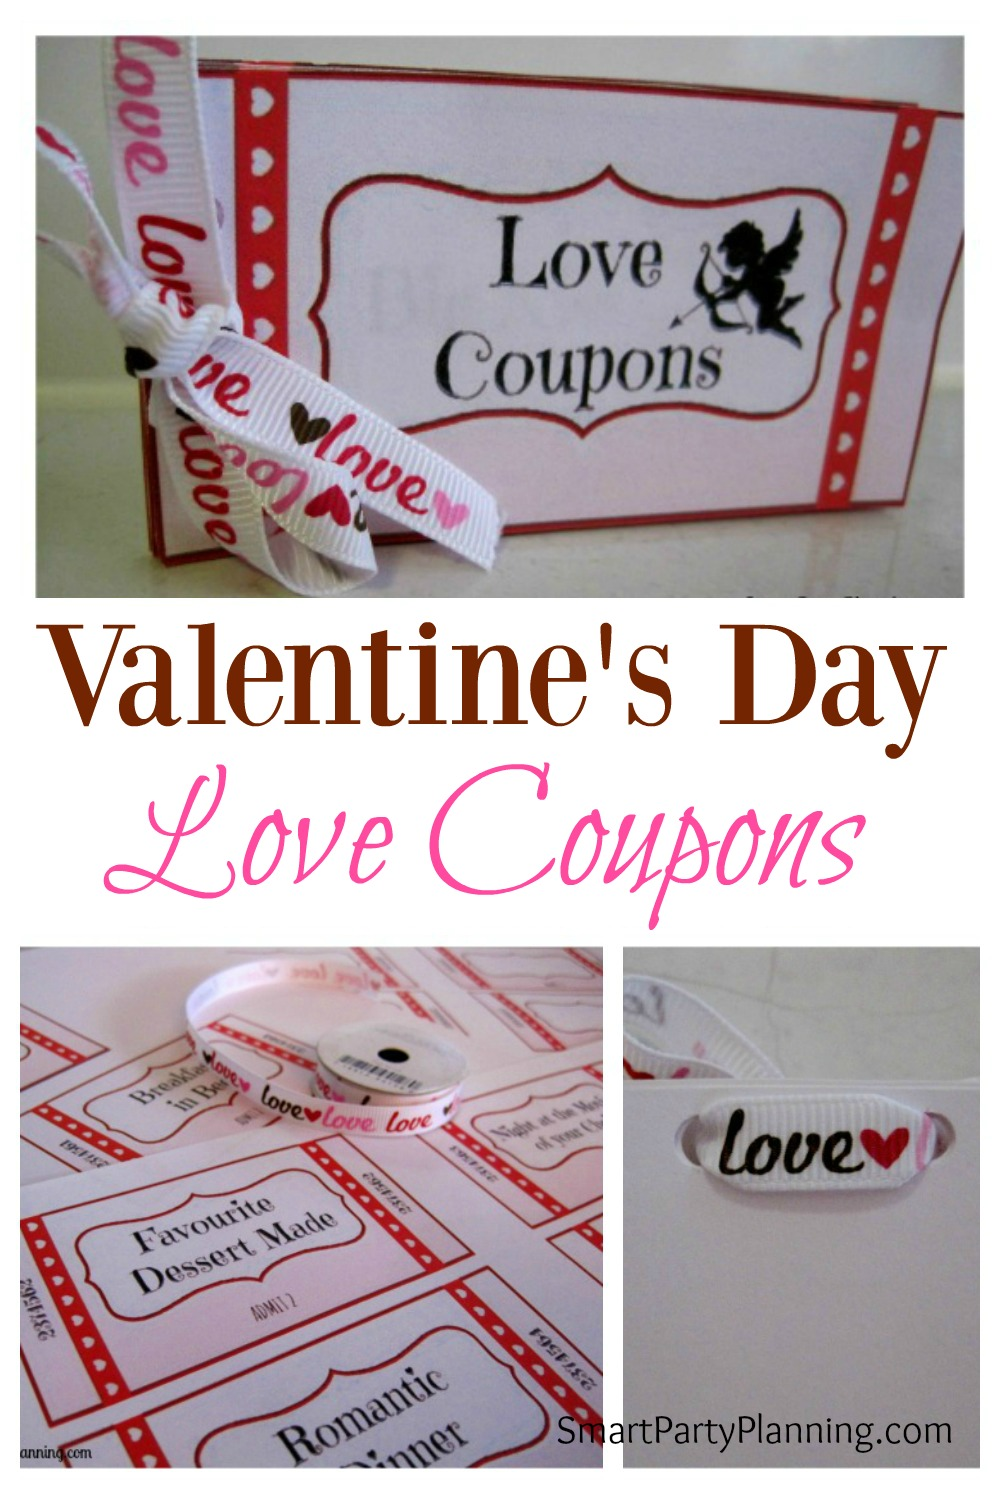 Treat someone you love with this set of love coupons. Ready made coupons and blank ones for you to be creative. It's an awesome gift for Valentine's Day.